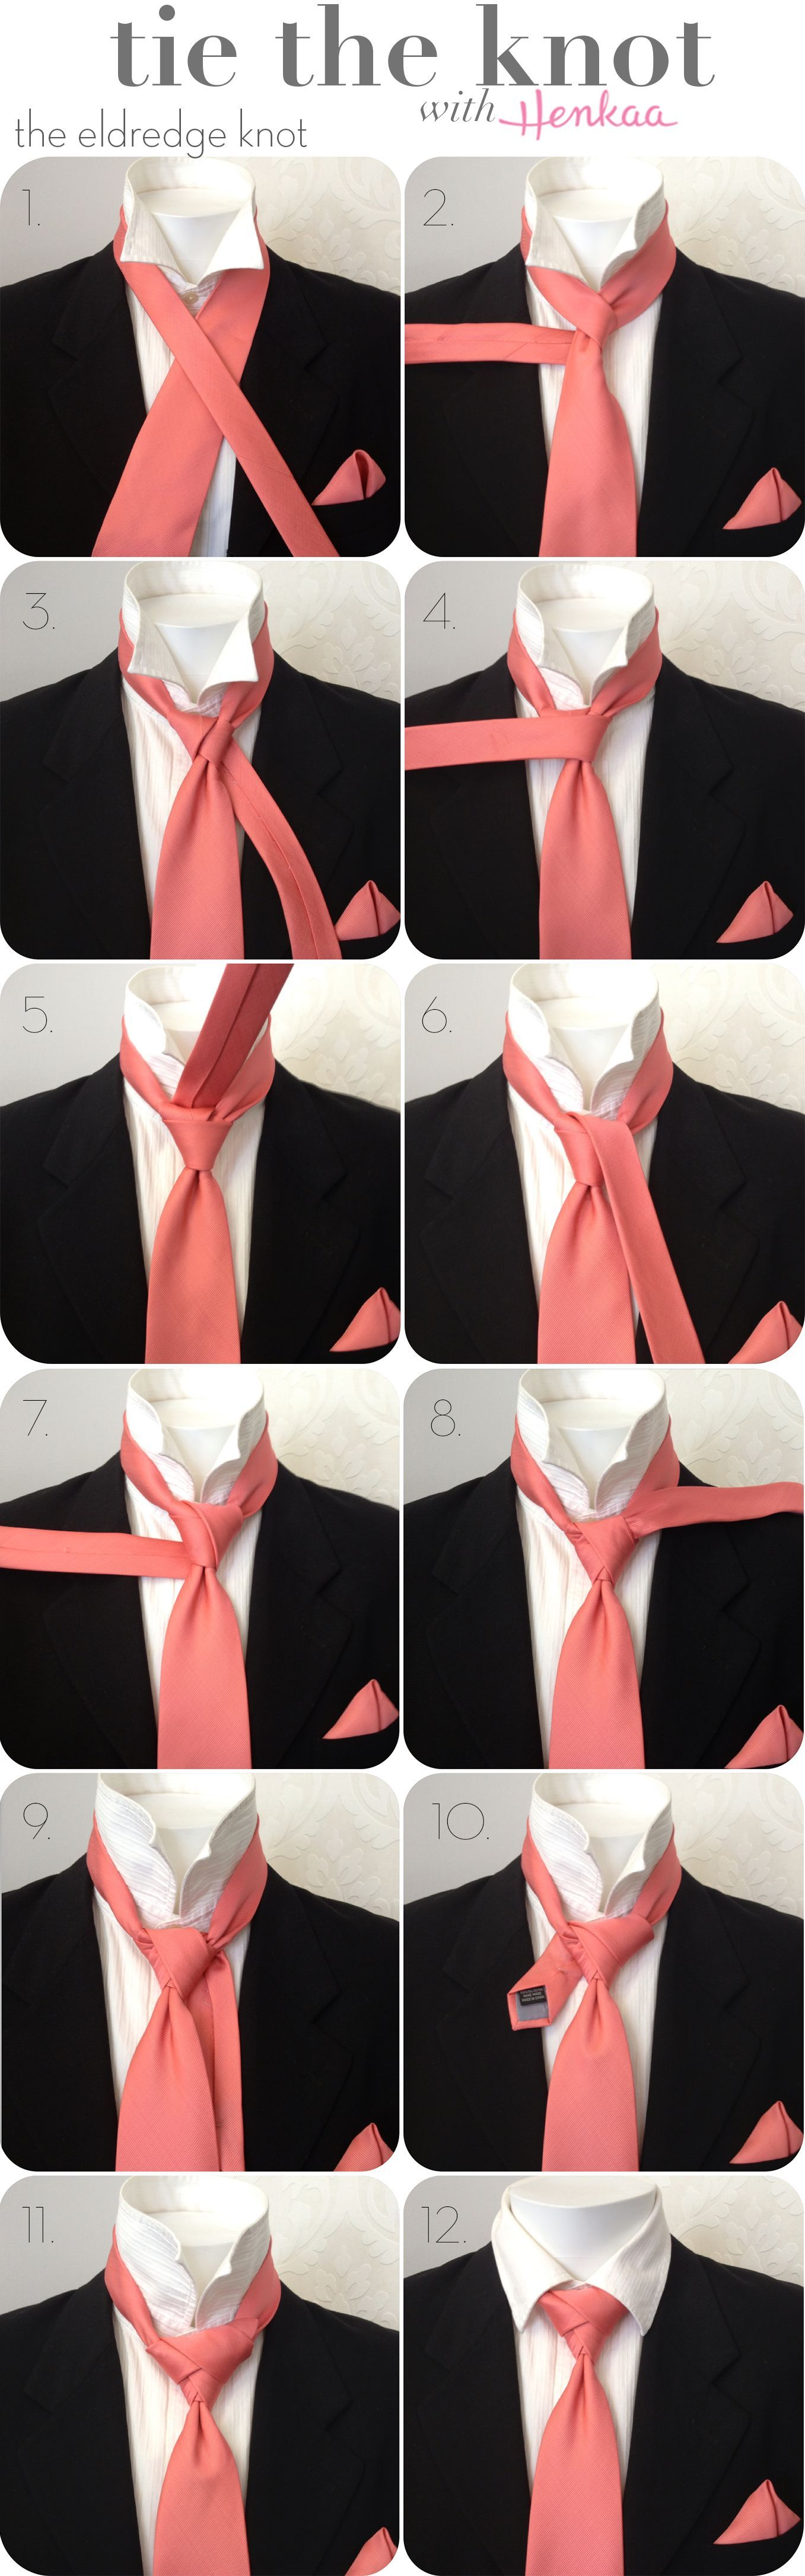 Tie The Knot How To Tie An Eldredge Knot How To Tie An Eldredge Knot Great For The Sartorial Groomsmen Or Just Any Gentleman With Style In 2020 Tie A Necktie